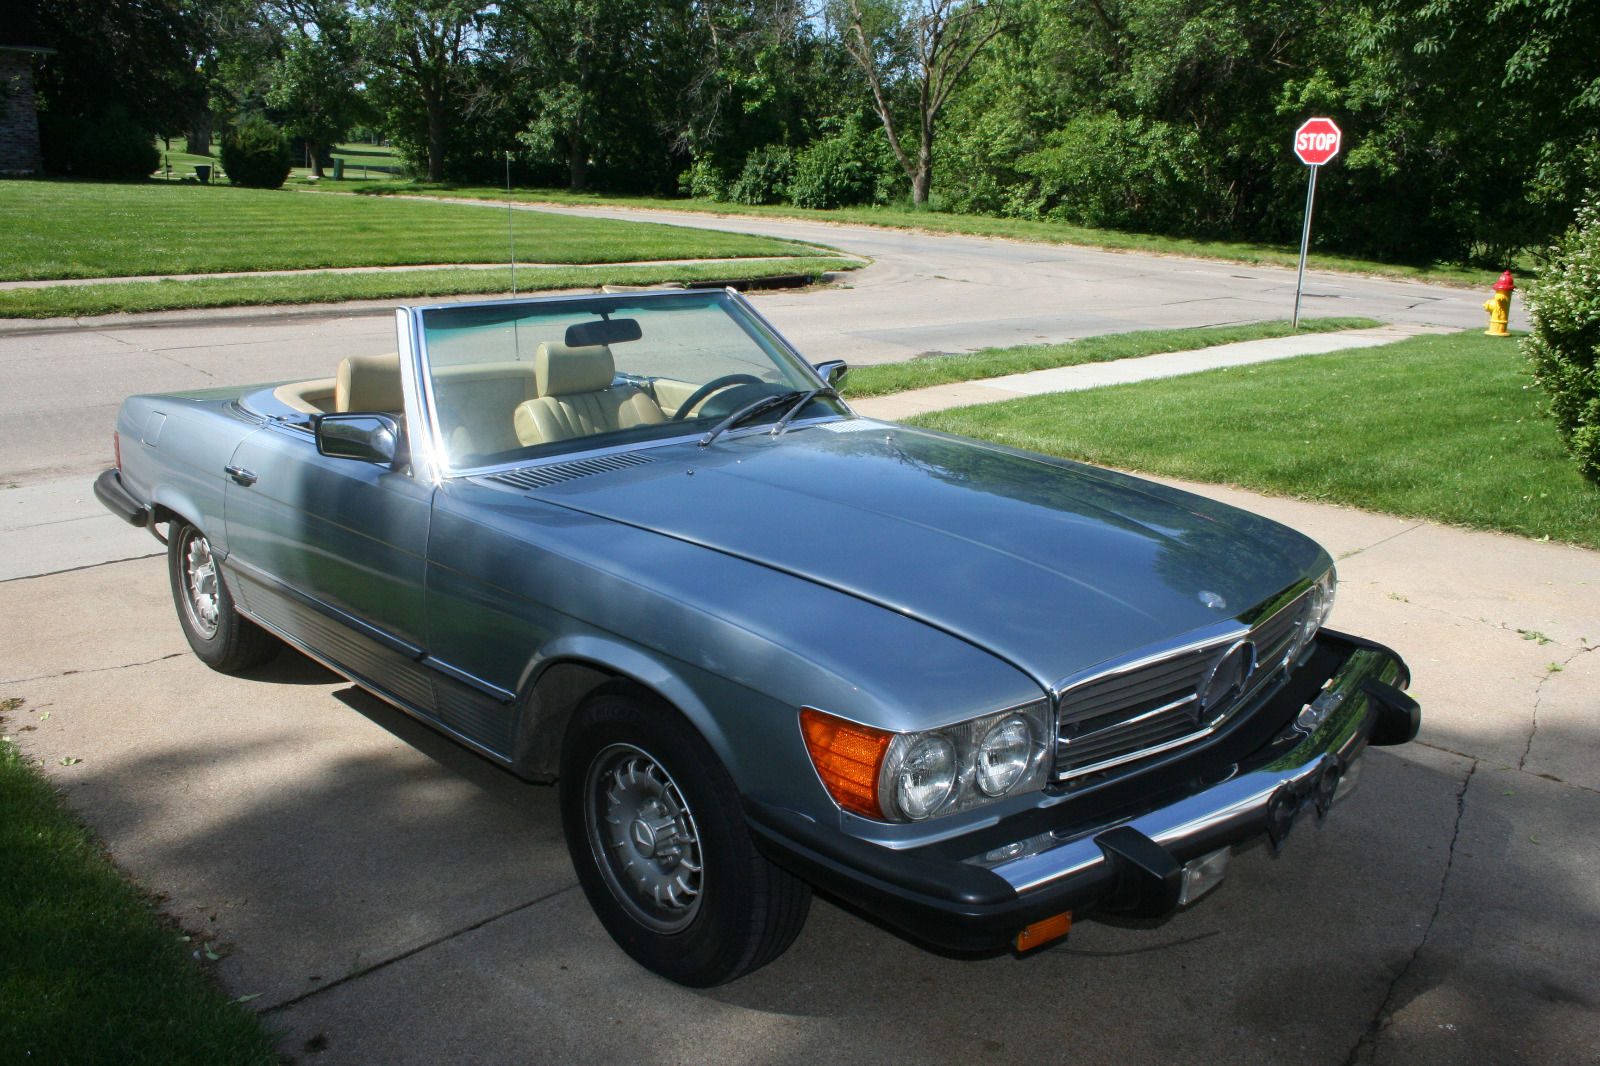 1980 mercedes benz 450sl convertible for sale for Used mercedes benz convertible for sale by owner